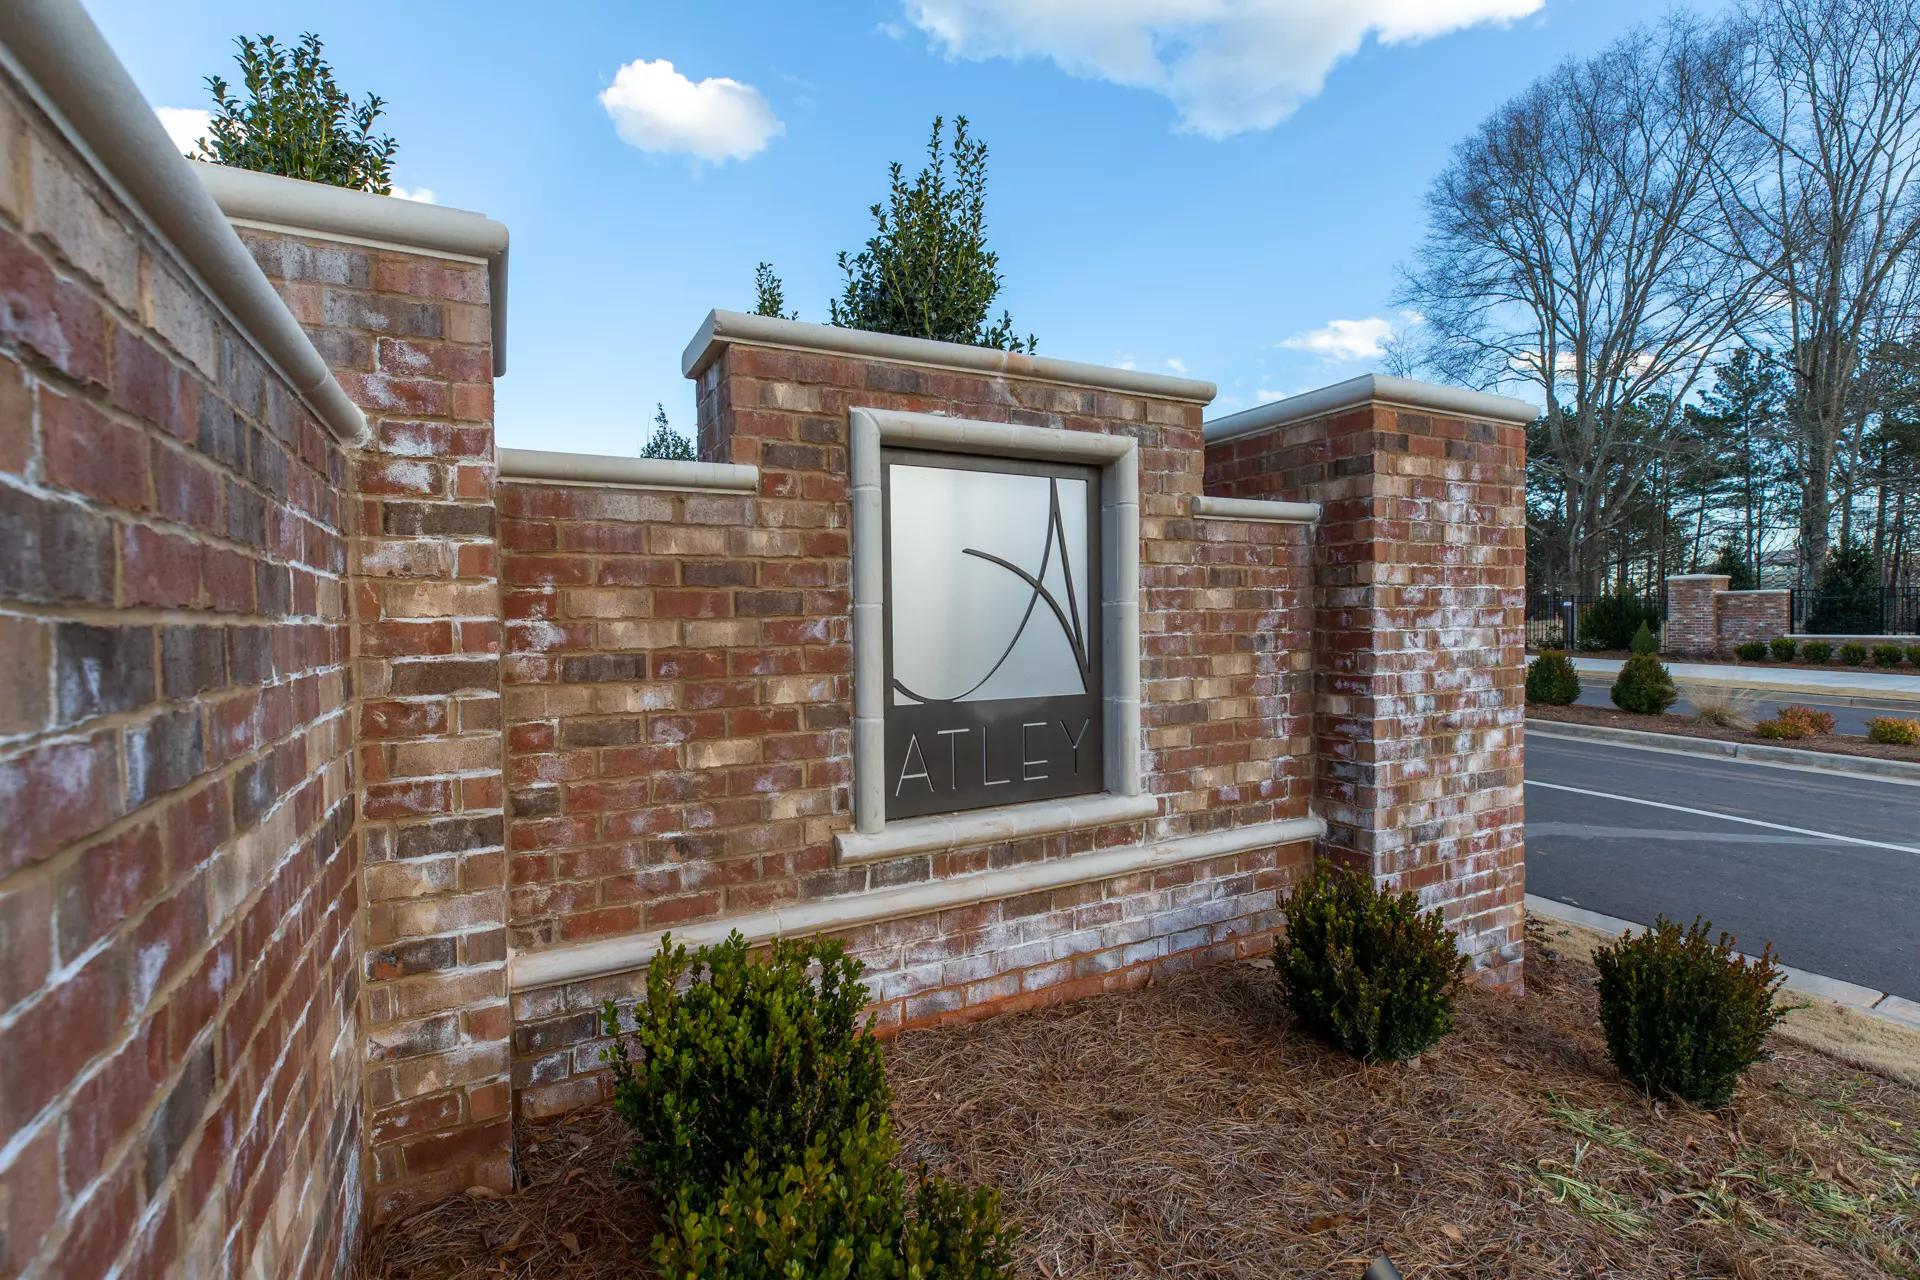 The Benefits of Luxury Condo Living in Alpharetta at Atley